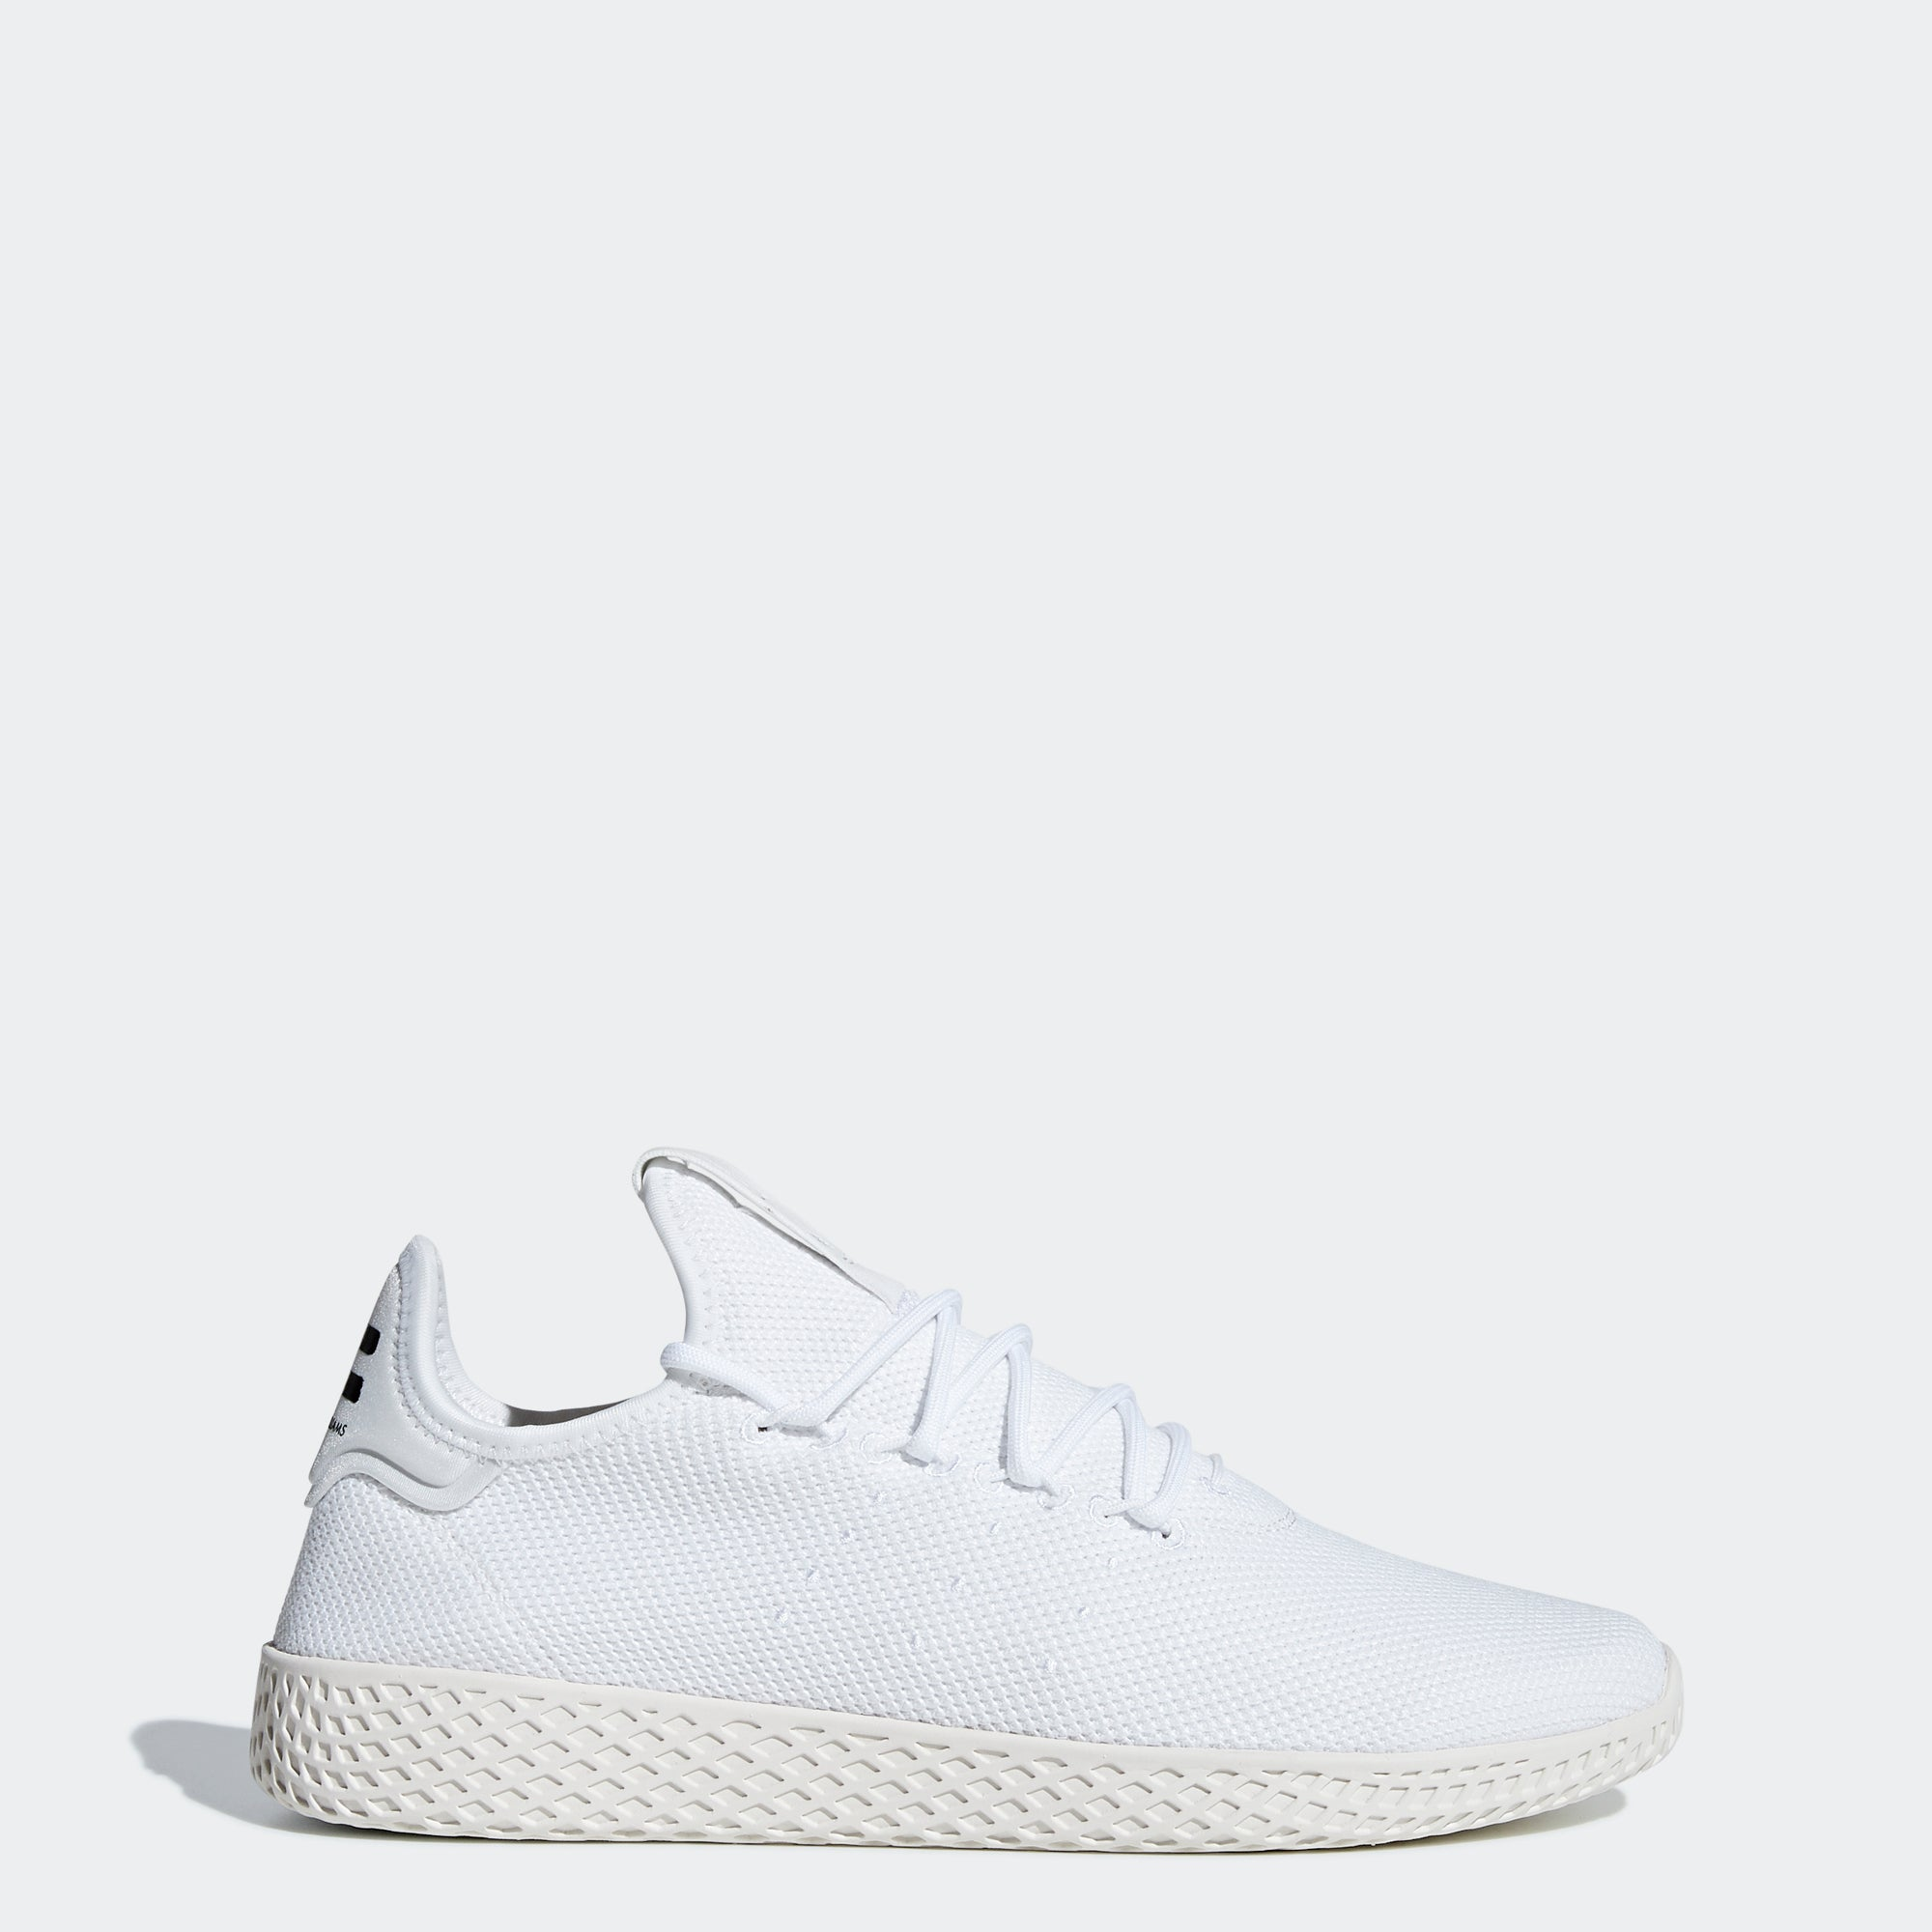 db819c76fa3c0 Men s adidas Originals Pharrell Williams Tennis Hu Shoes Cloud White